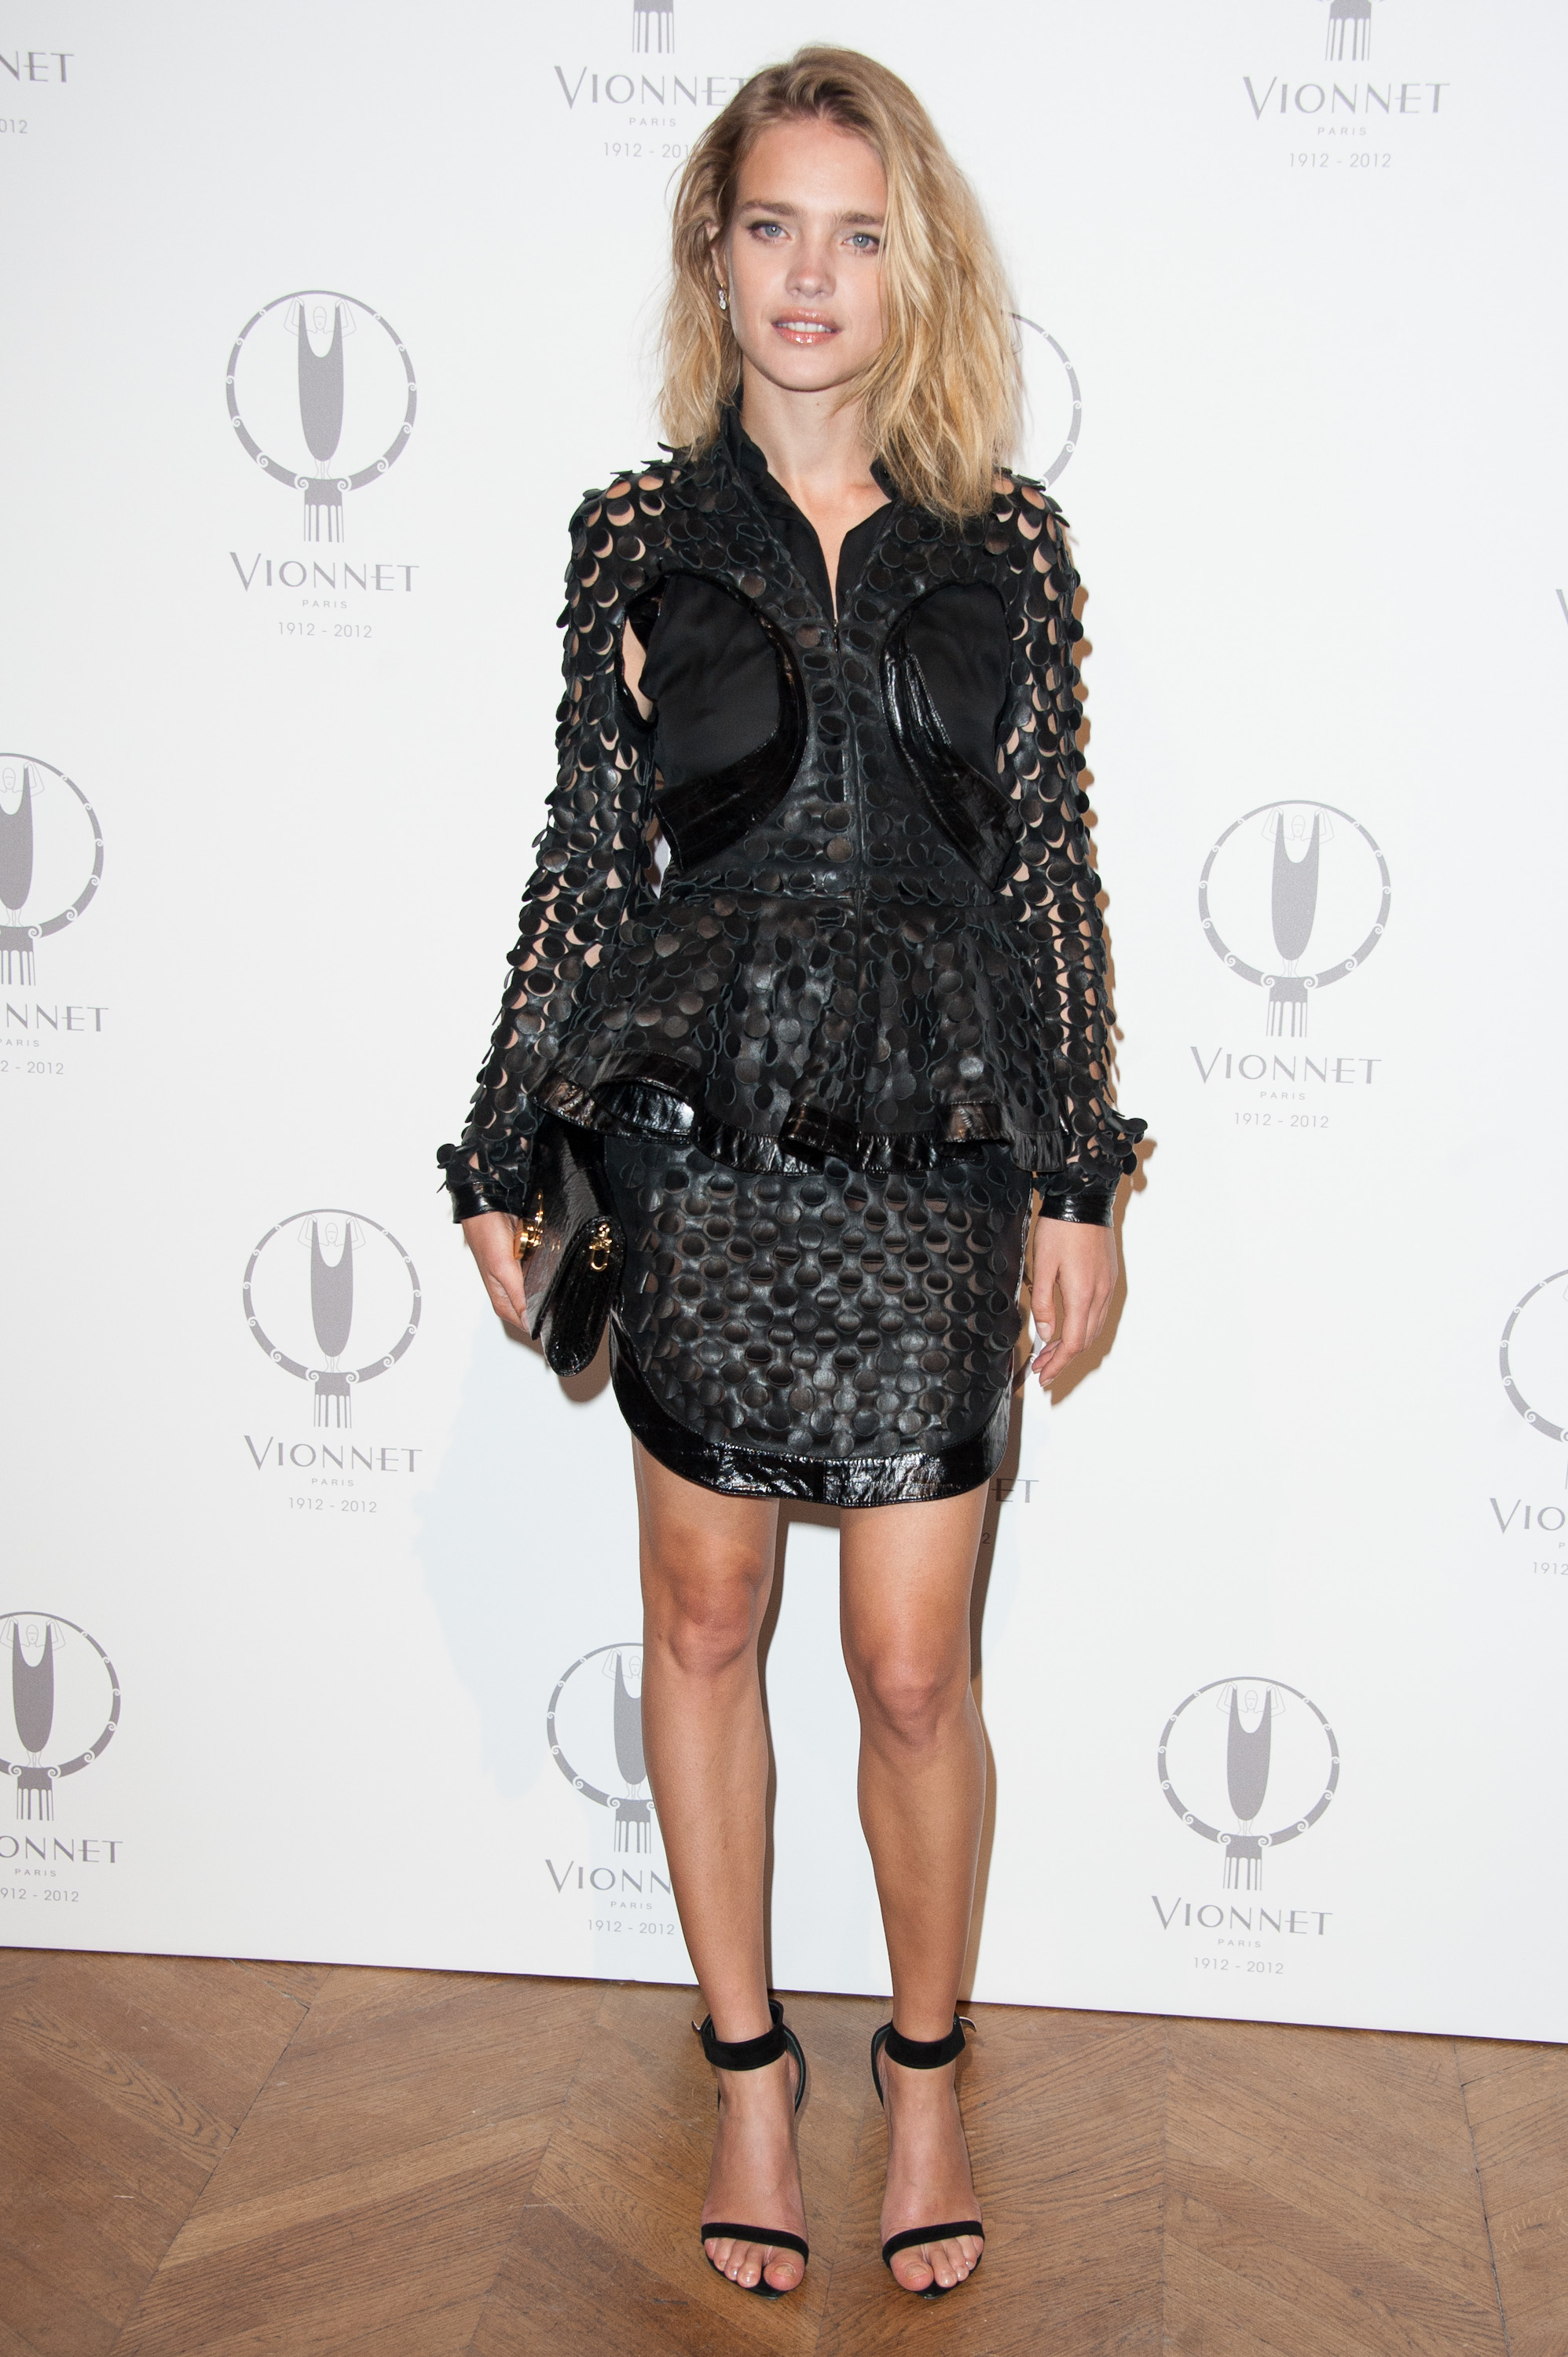 Natalia Vodianova gave her LBD an ultratextured feel, only adding a pair of Givenchy's must-have ankle-strap sandals for the fini